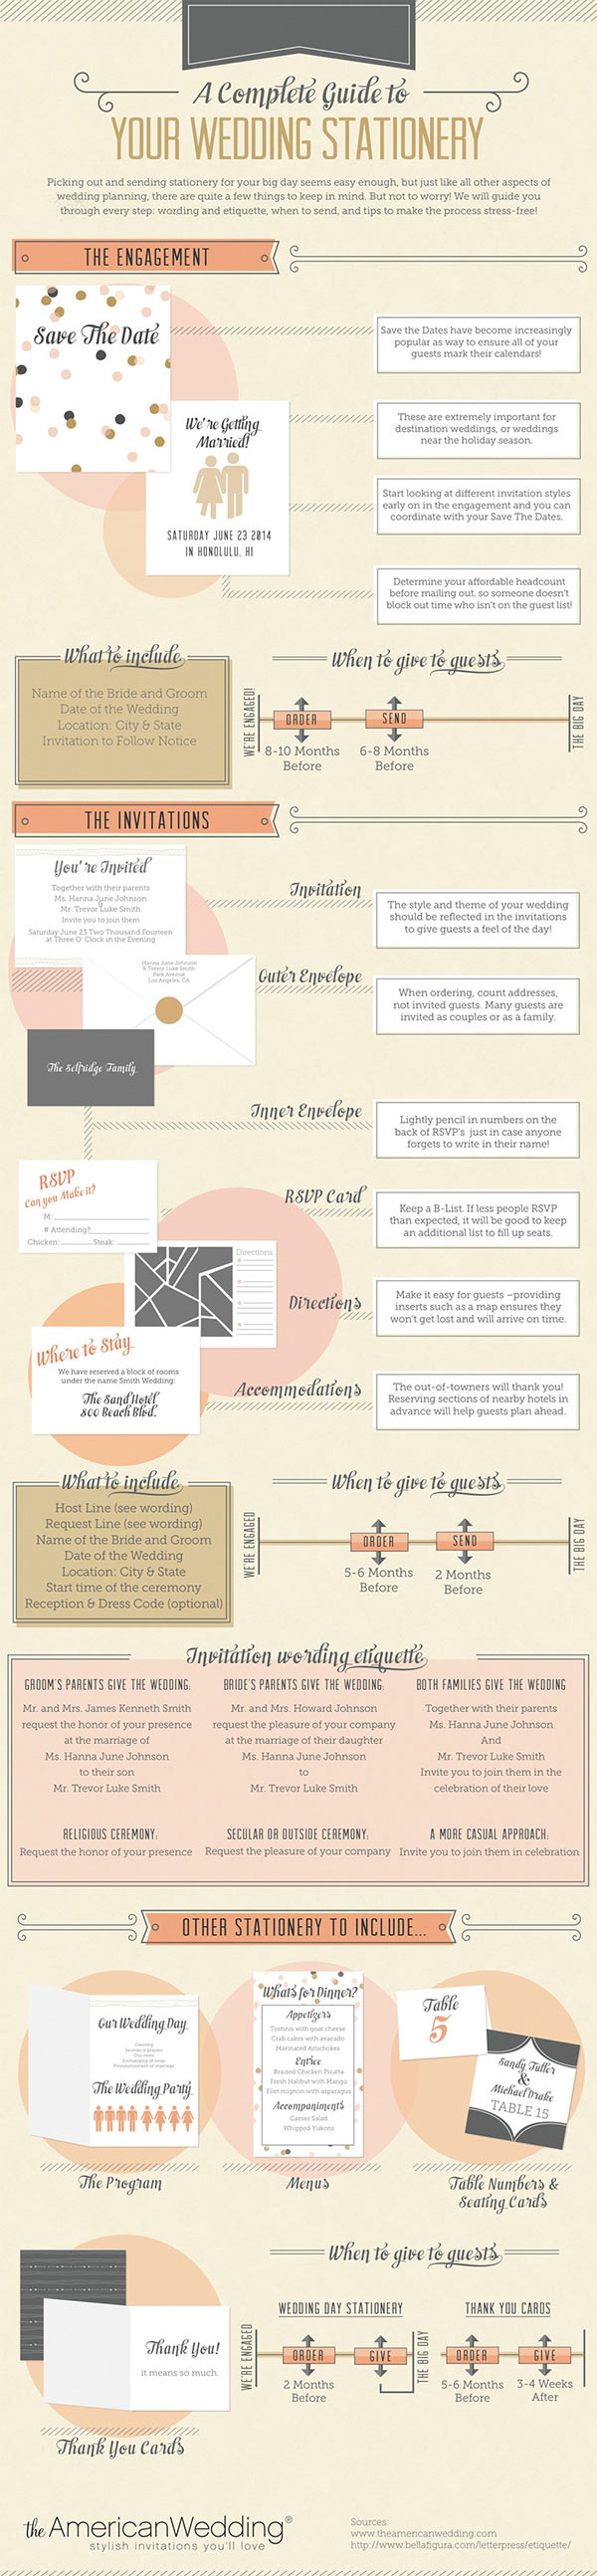 Wedding planning timeline american wedding wisdom wedding stationery guide junglespirit Image collections